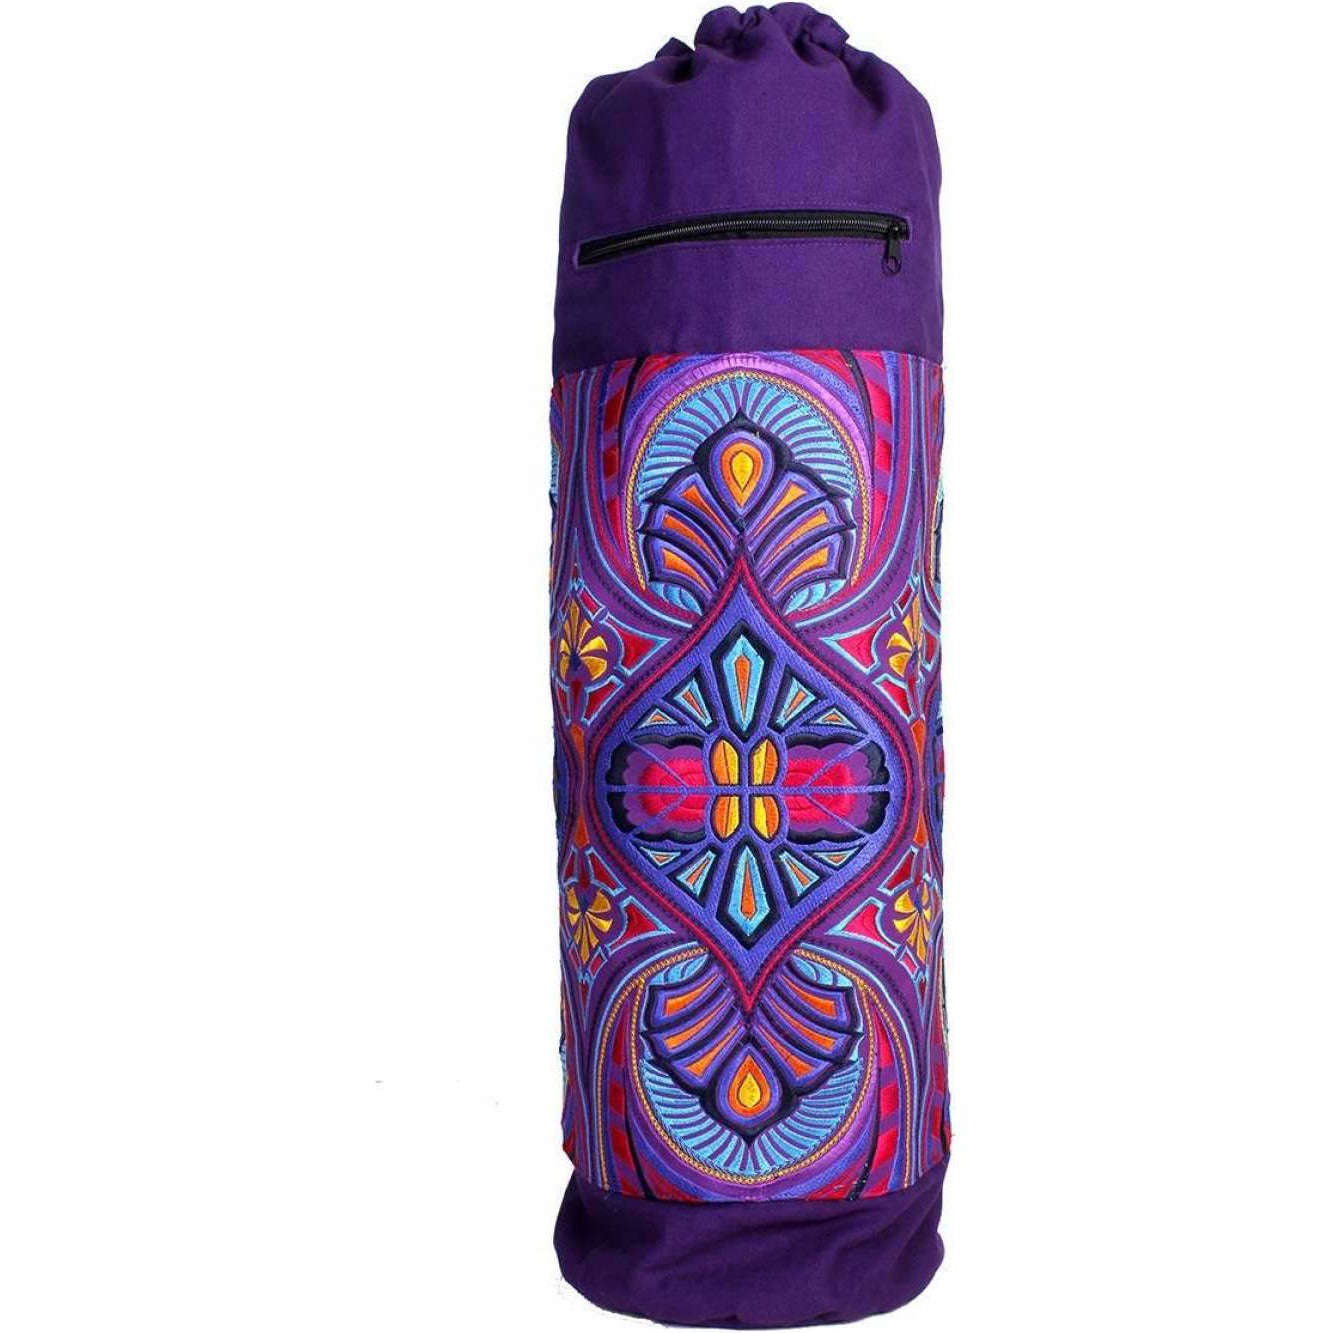 Fair Trade Tribal Tahj Yoga Bag with Drawstring